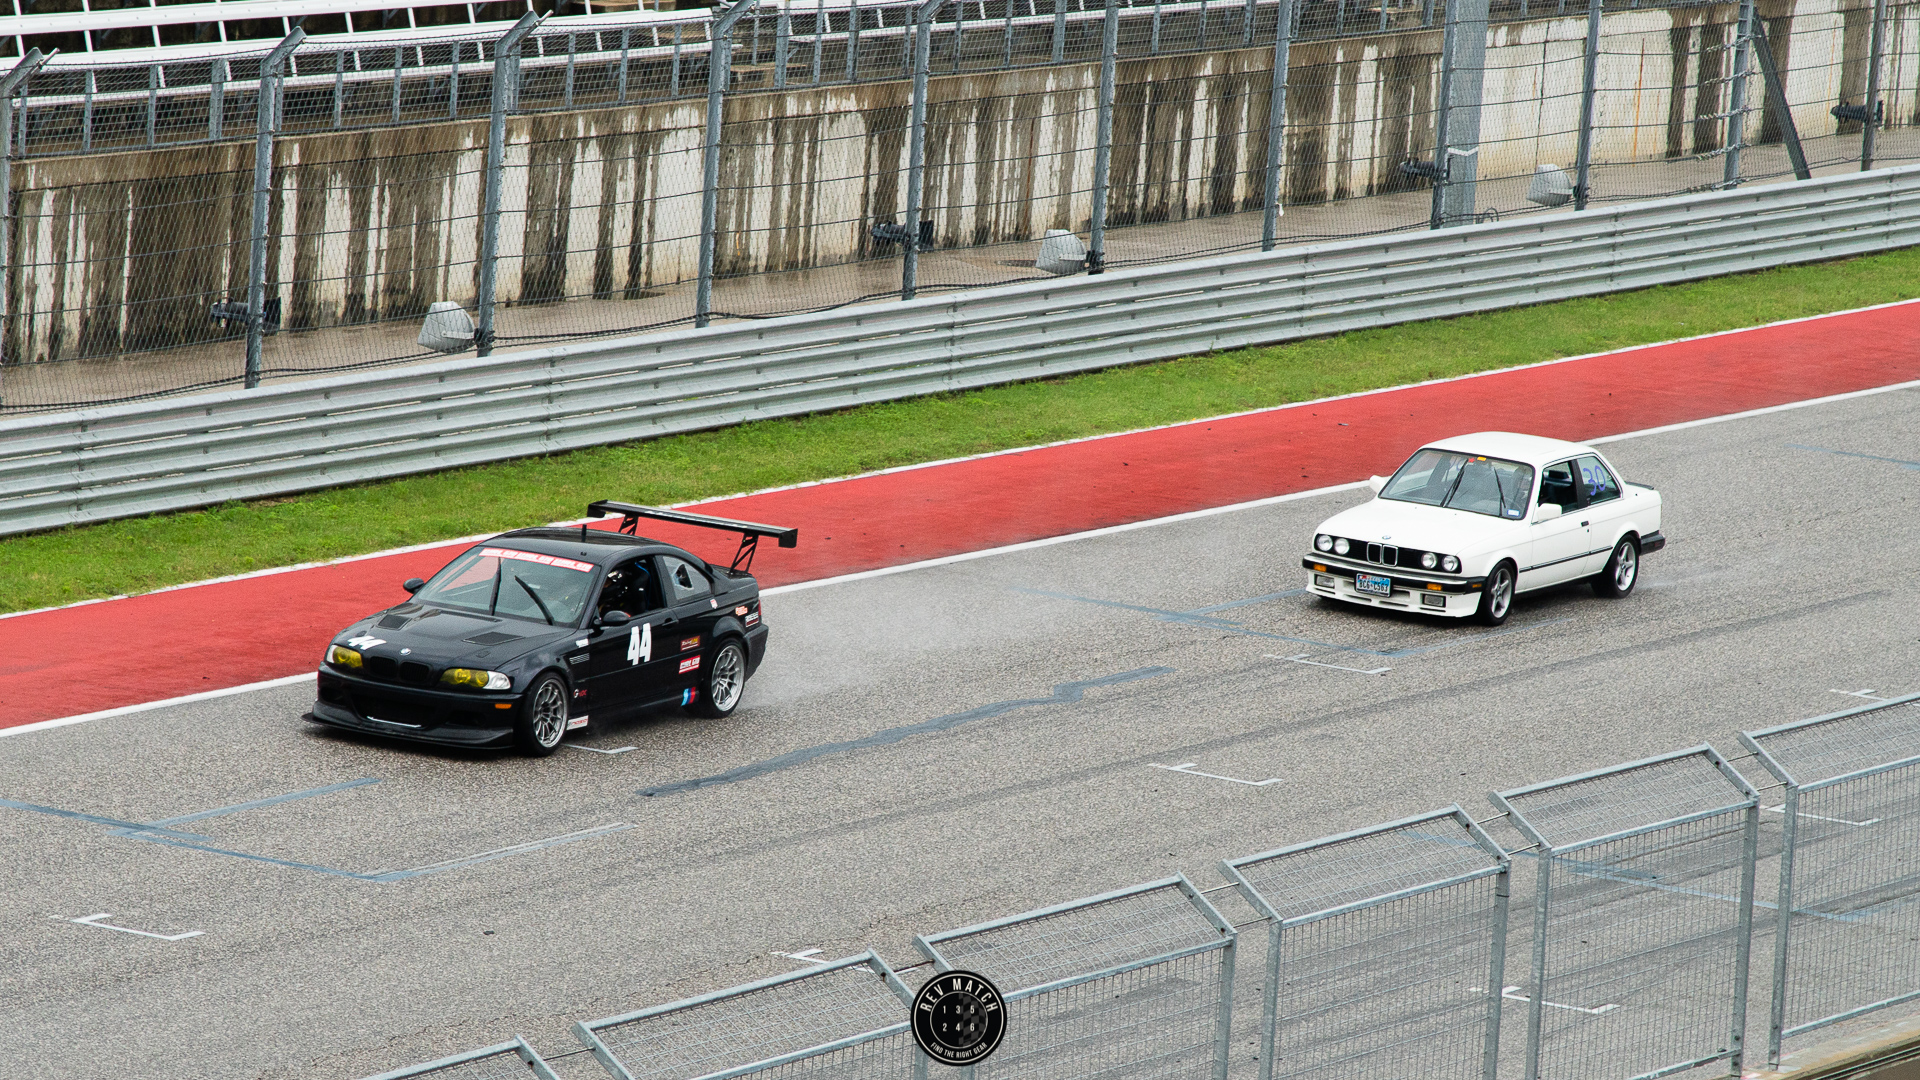 Edge Addict COTA May 2019 Rev Match Media-50.jpg